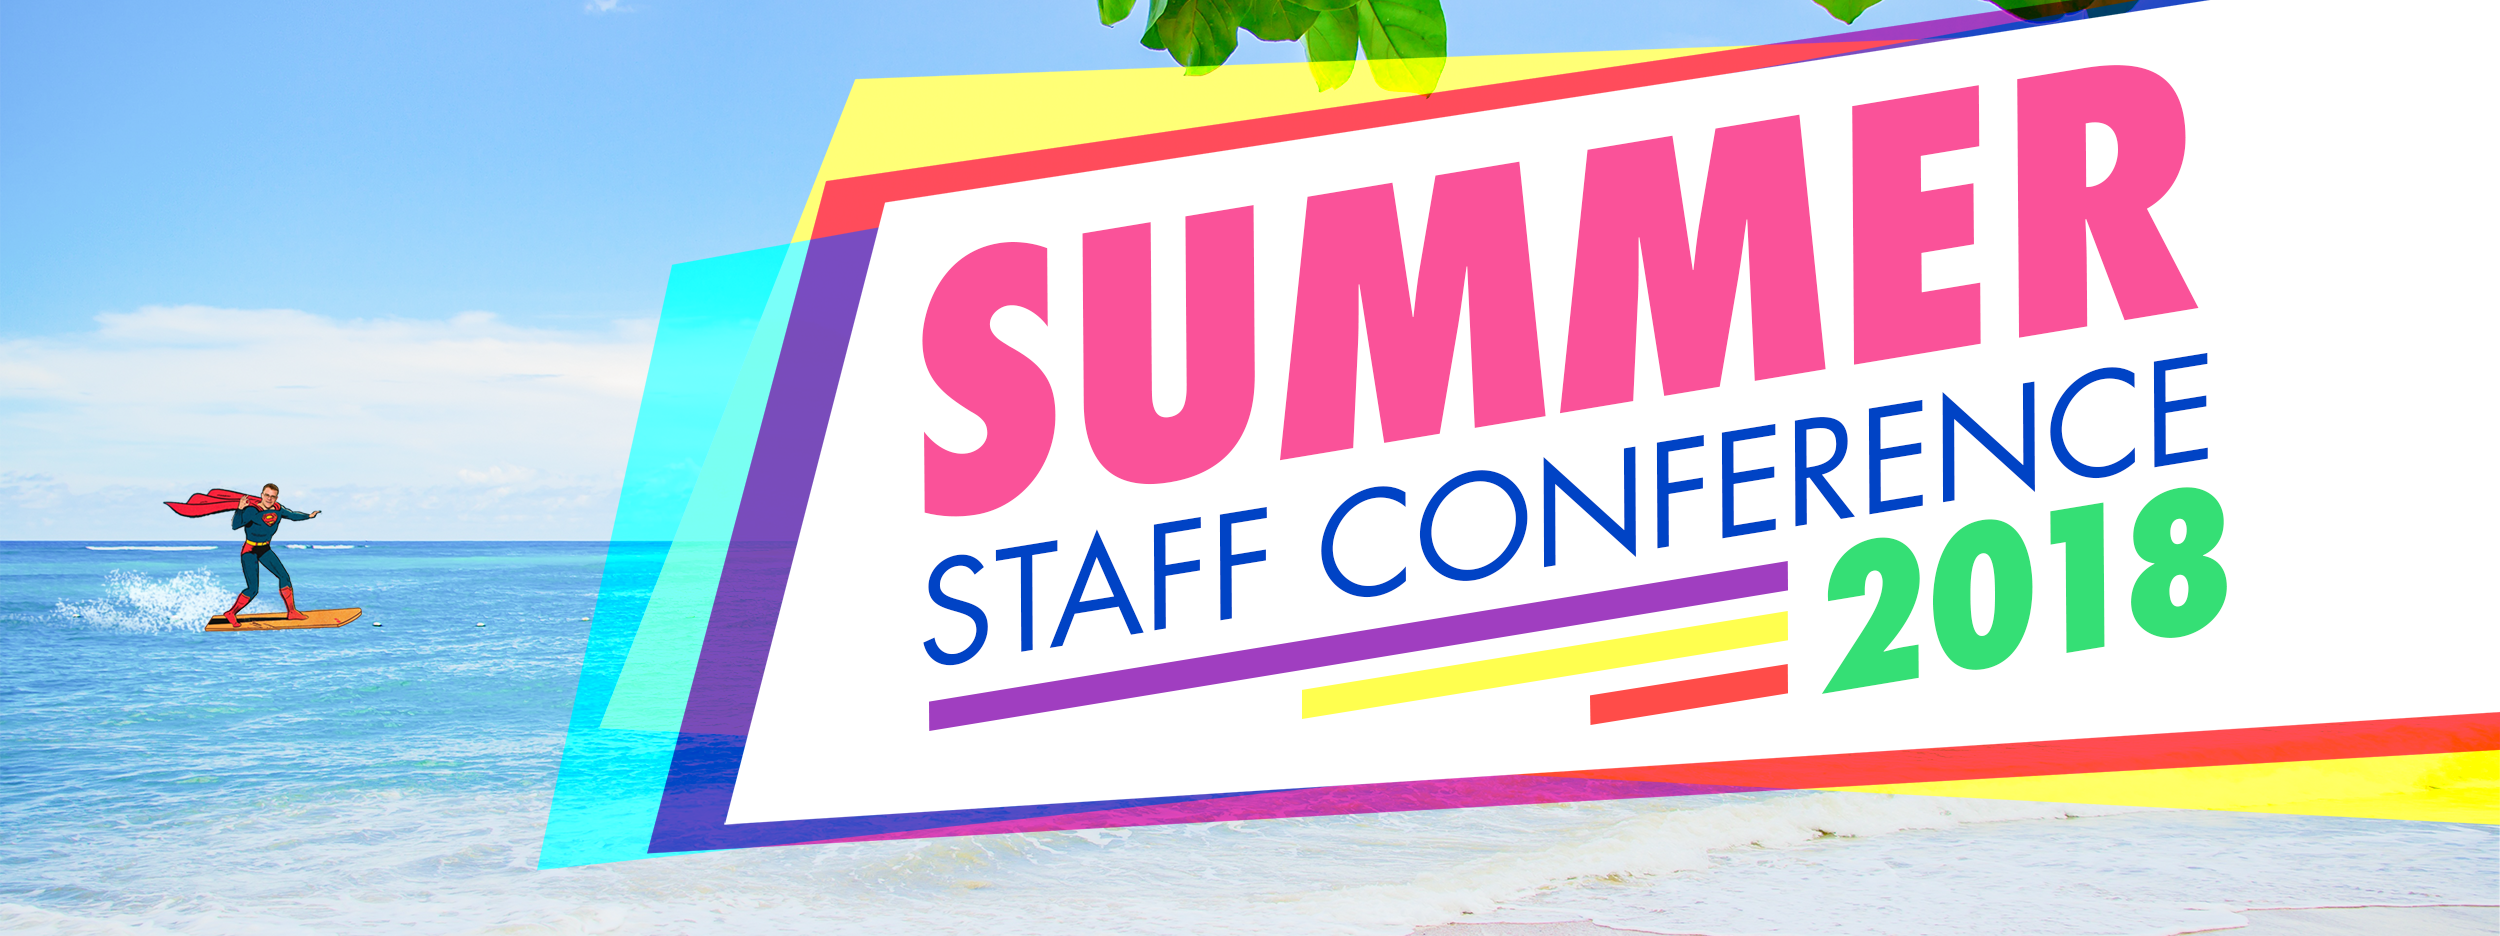 2018 Summer Staff Conference